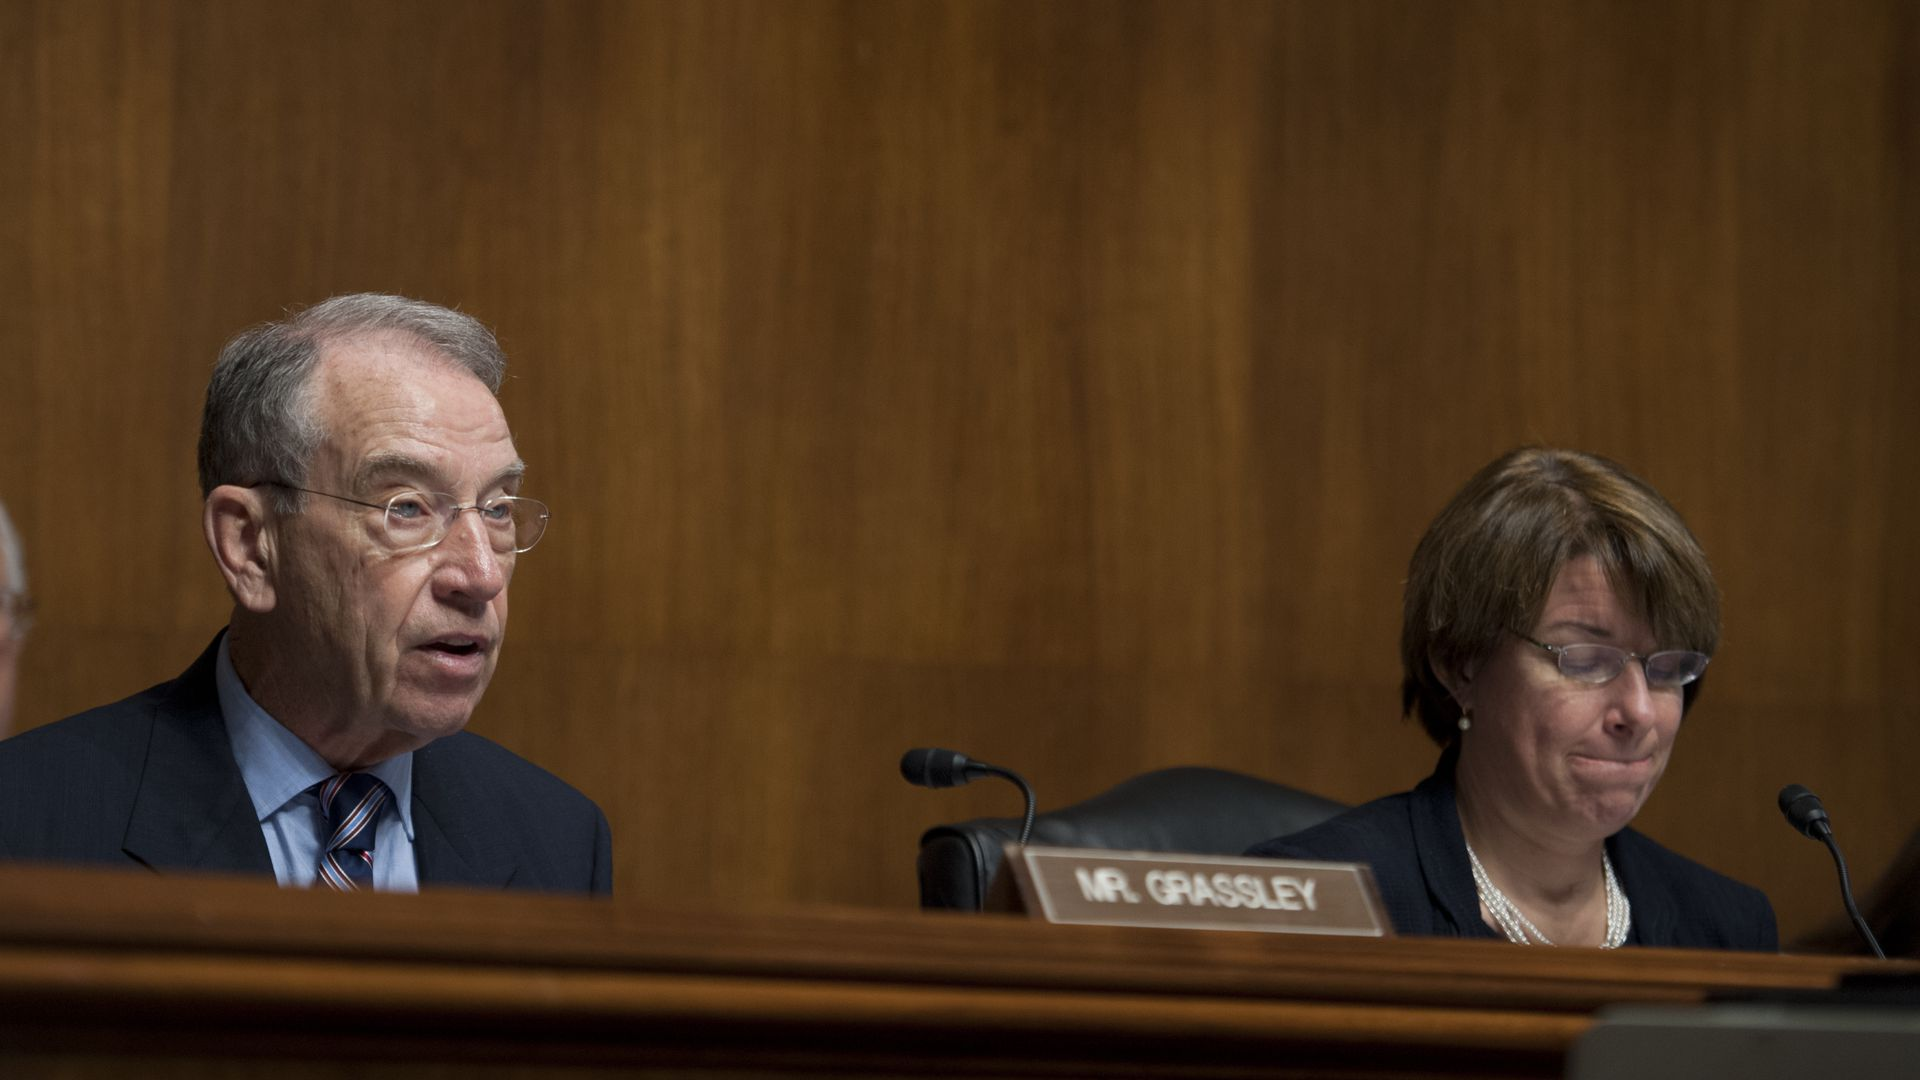 Chuck Grassley and Amy Klobuchar at a Senate committee hearing.